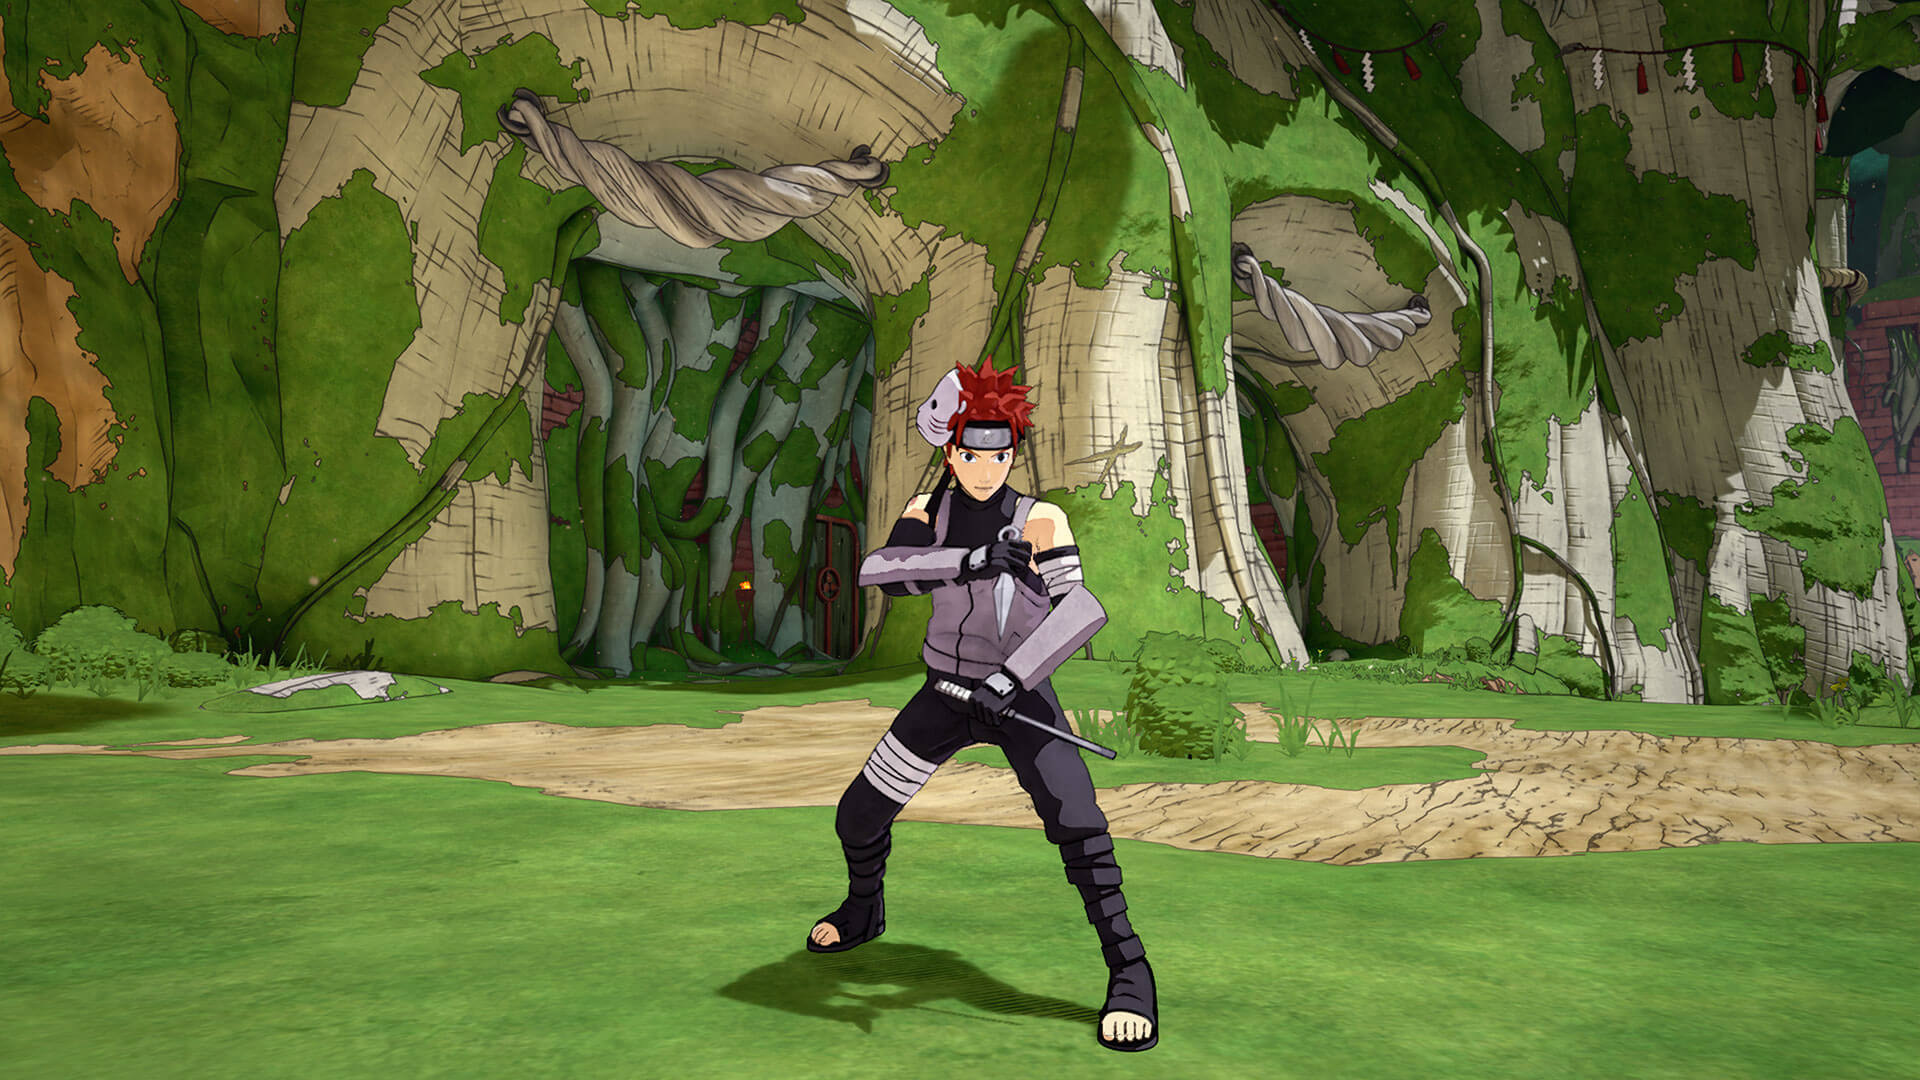 Play Anime – Your Official Naruto, Dragonball, One Piece and